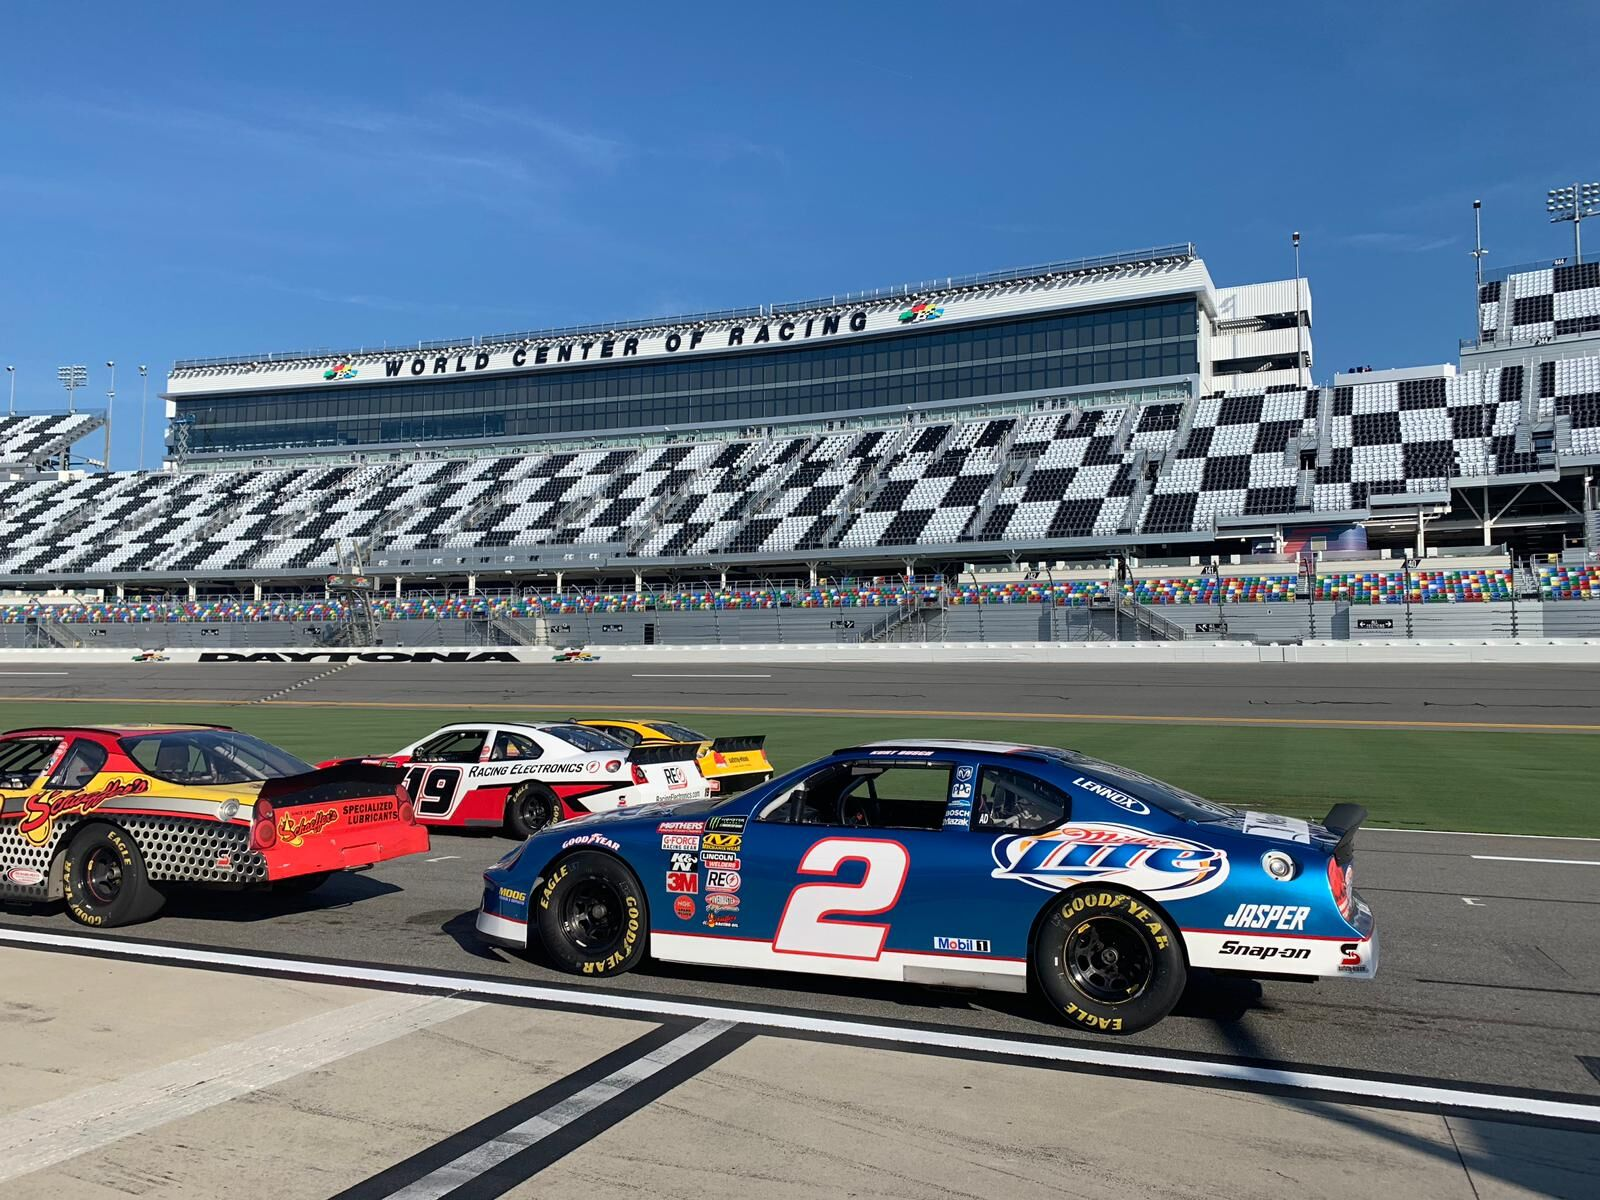 What It's Like to Race Daytona International Speedway